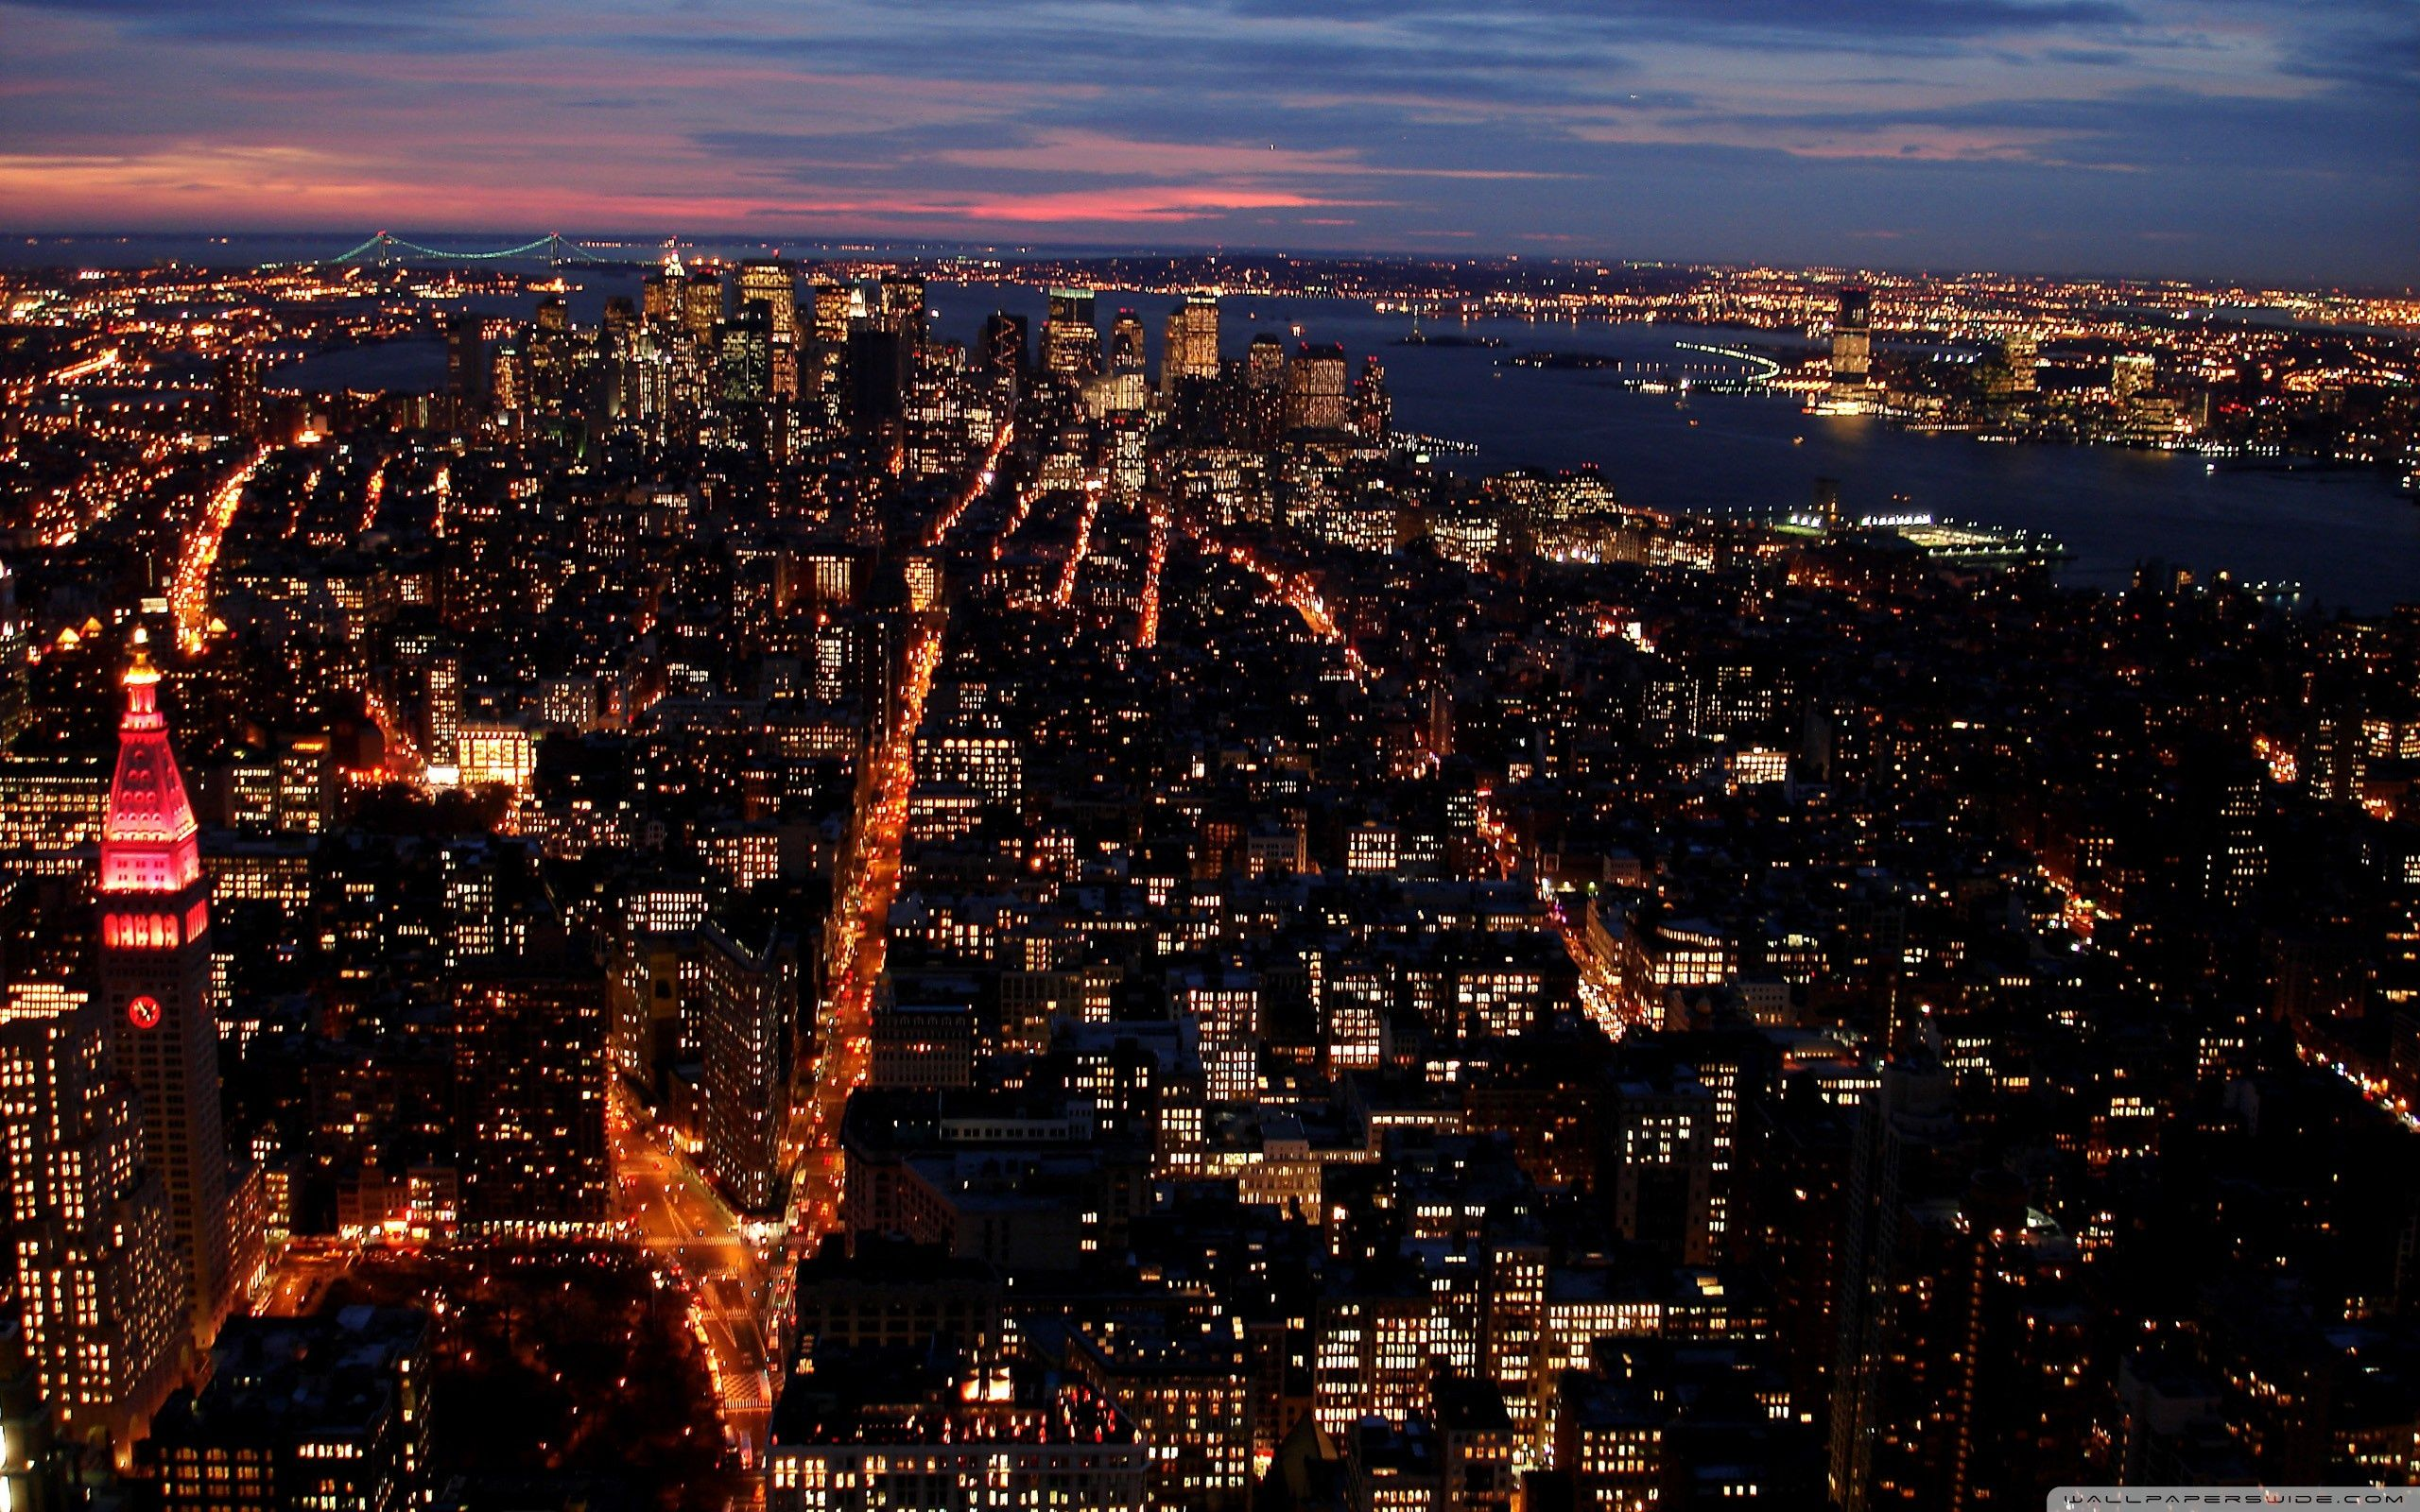 City Lights At Night Wallpapers Top Free City Lights At Night Backgrounds Wallpaperaccess